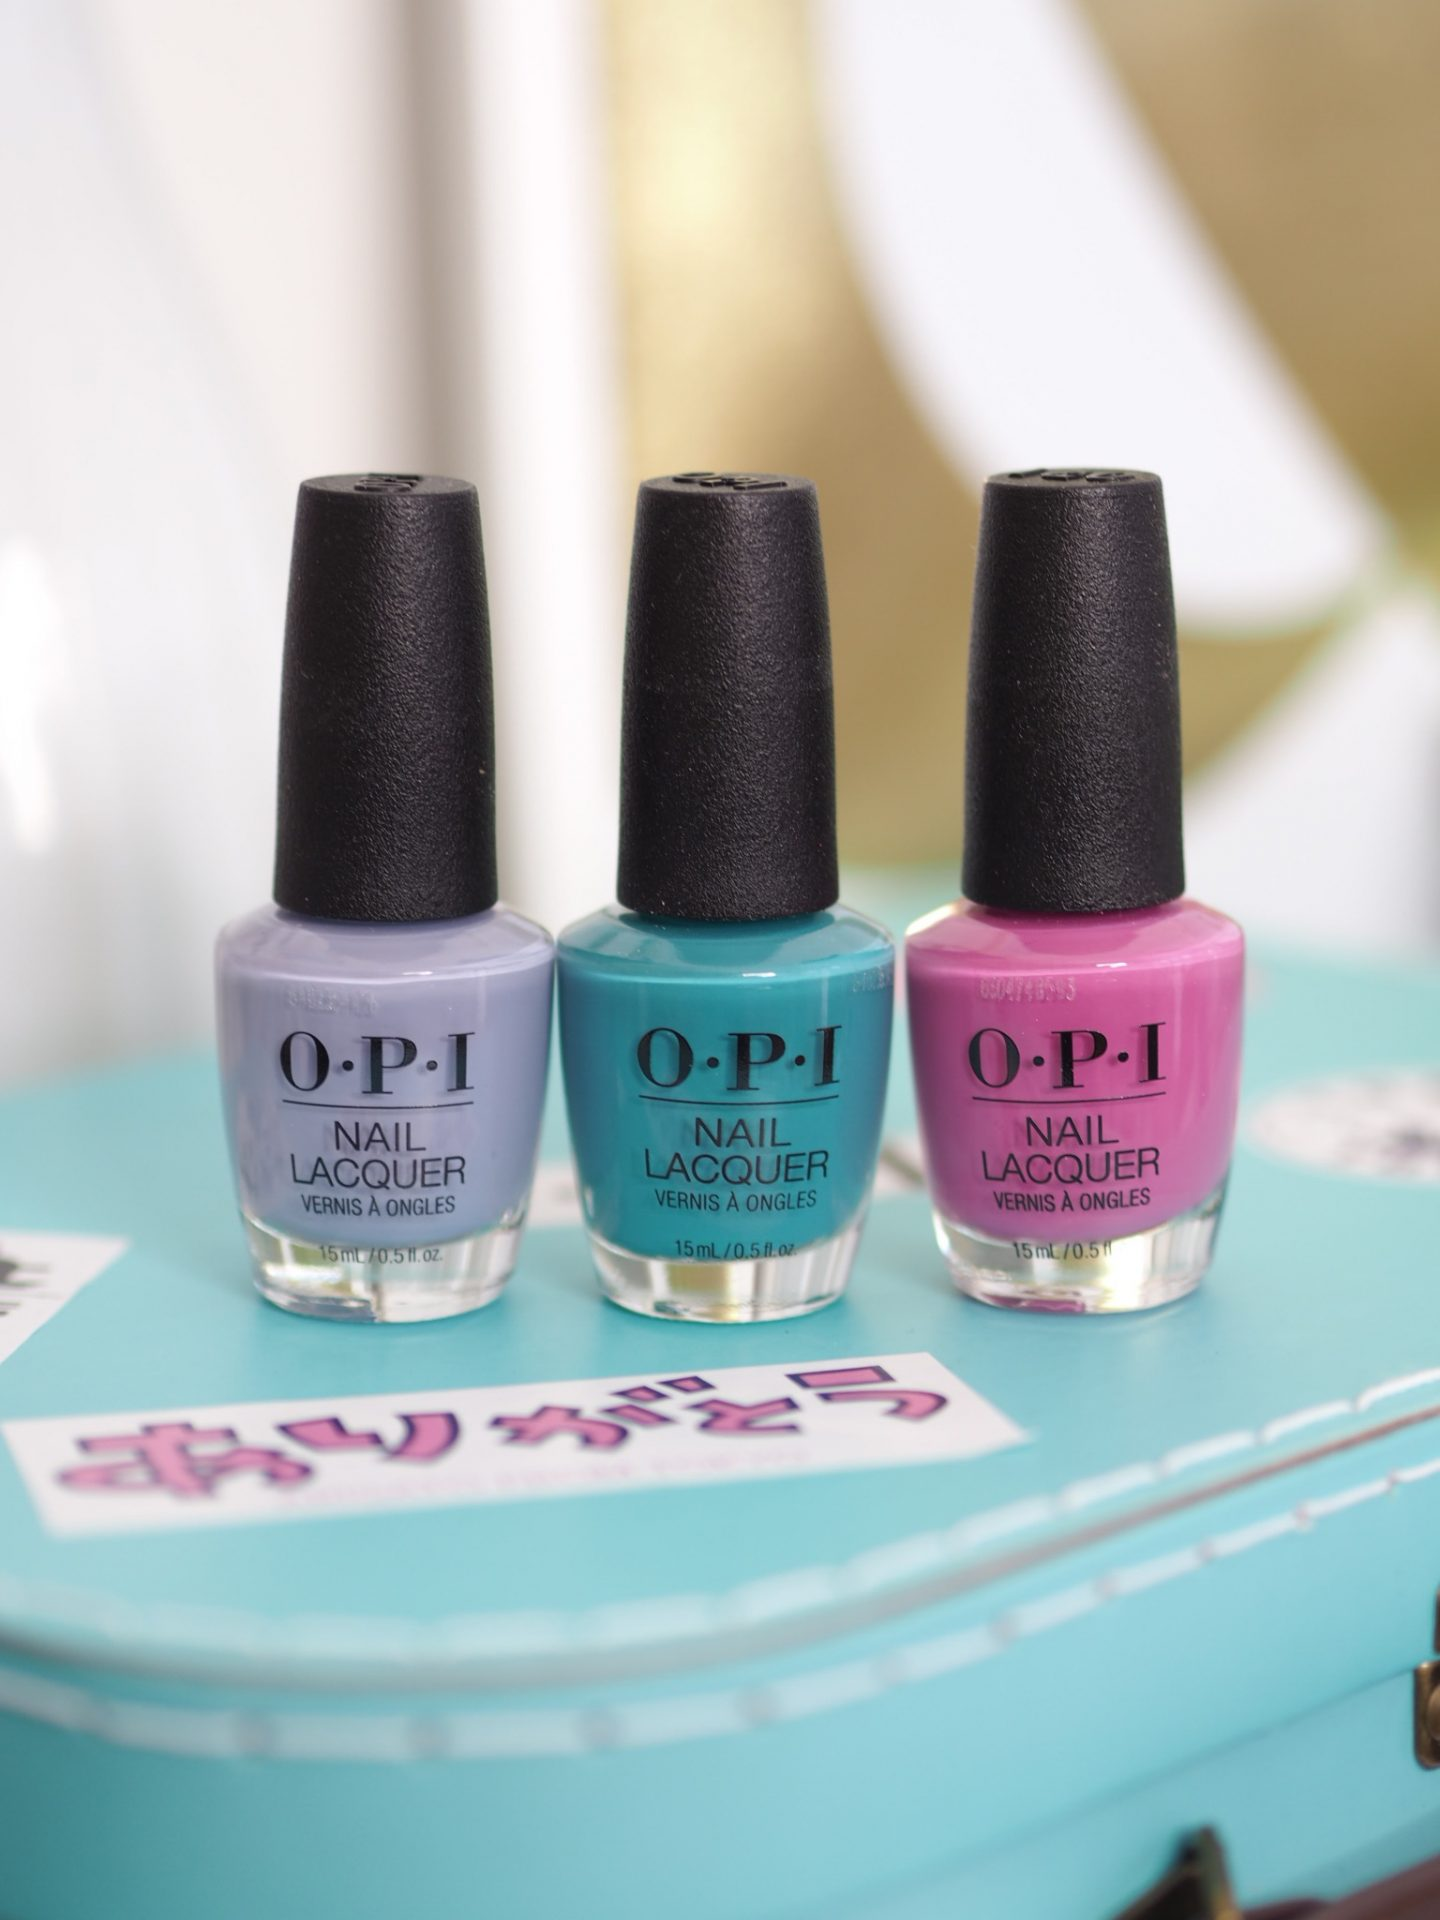 OPI Tokyo Collection 2019